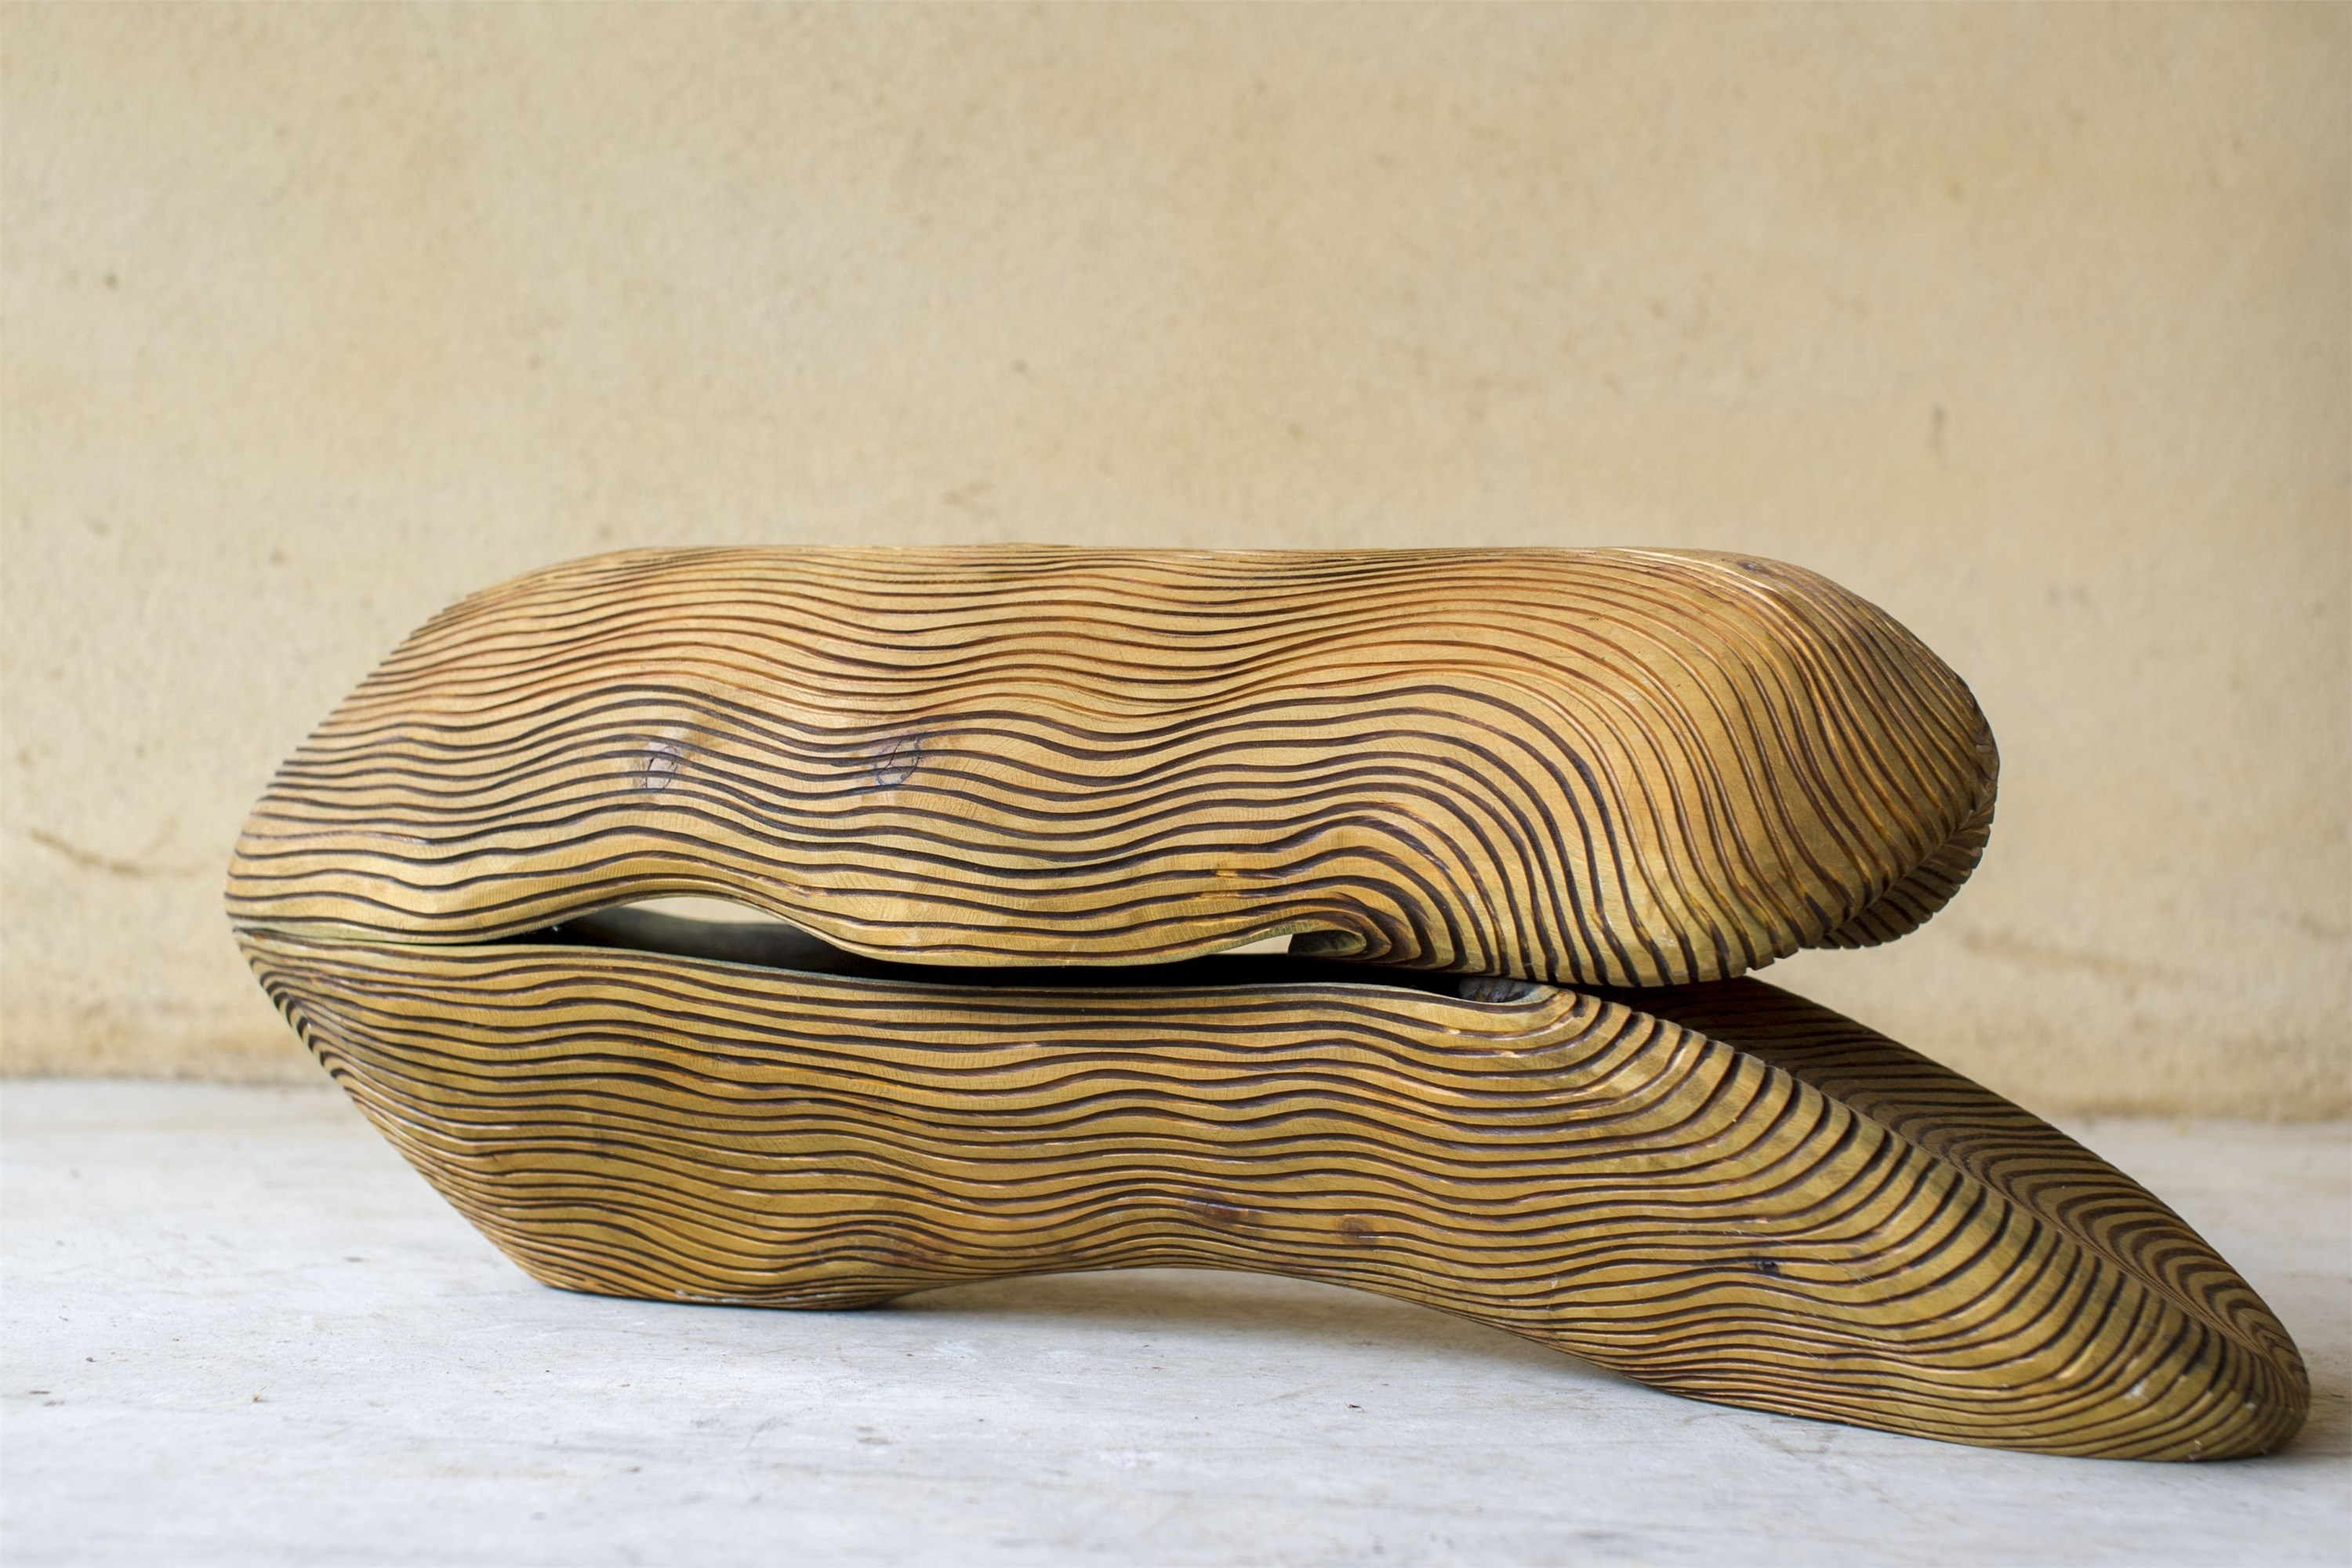 Série Biografias, original Nature Wood Sculpture by Paulo Neves